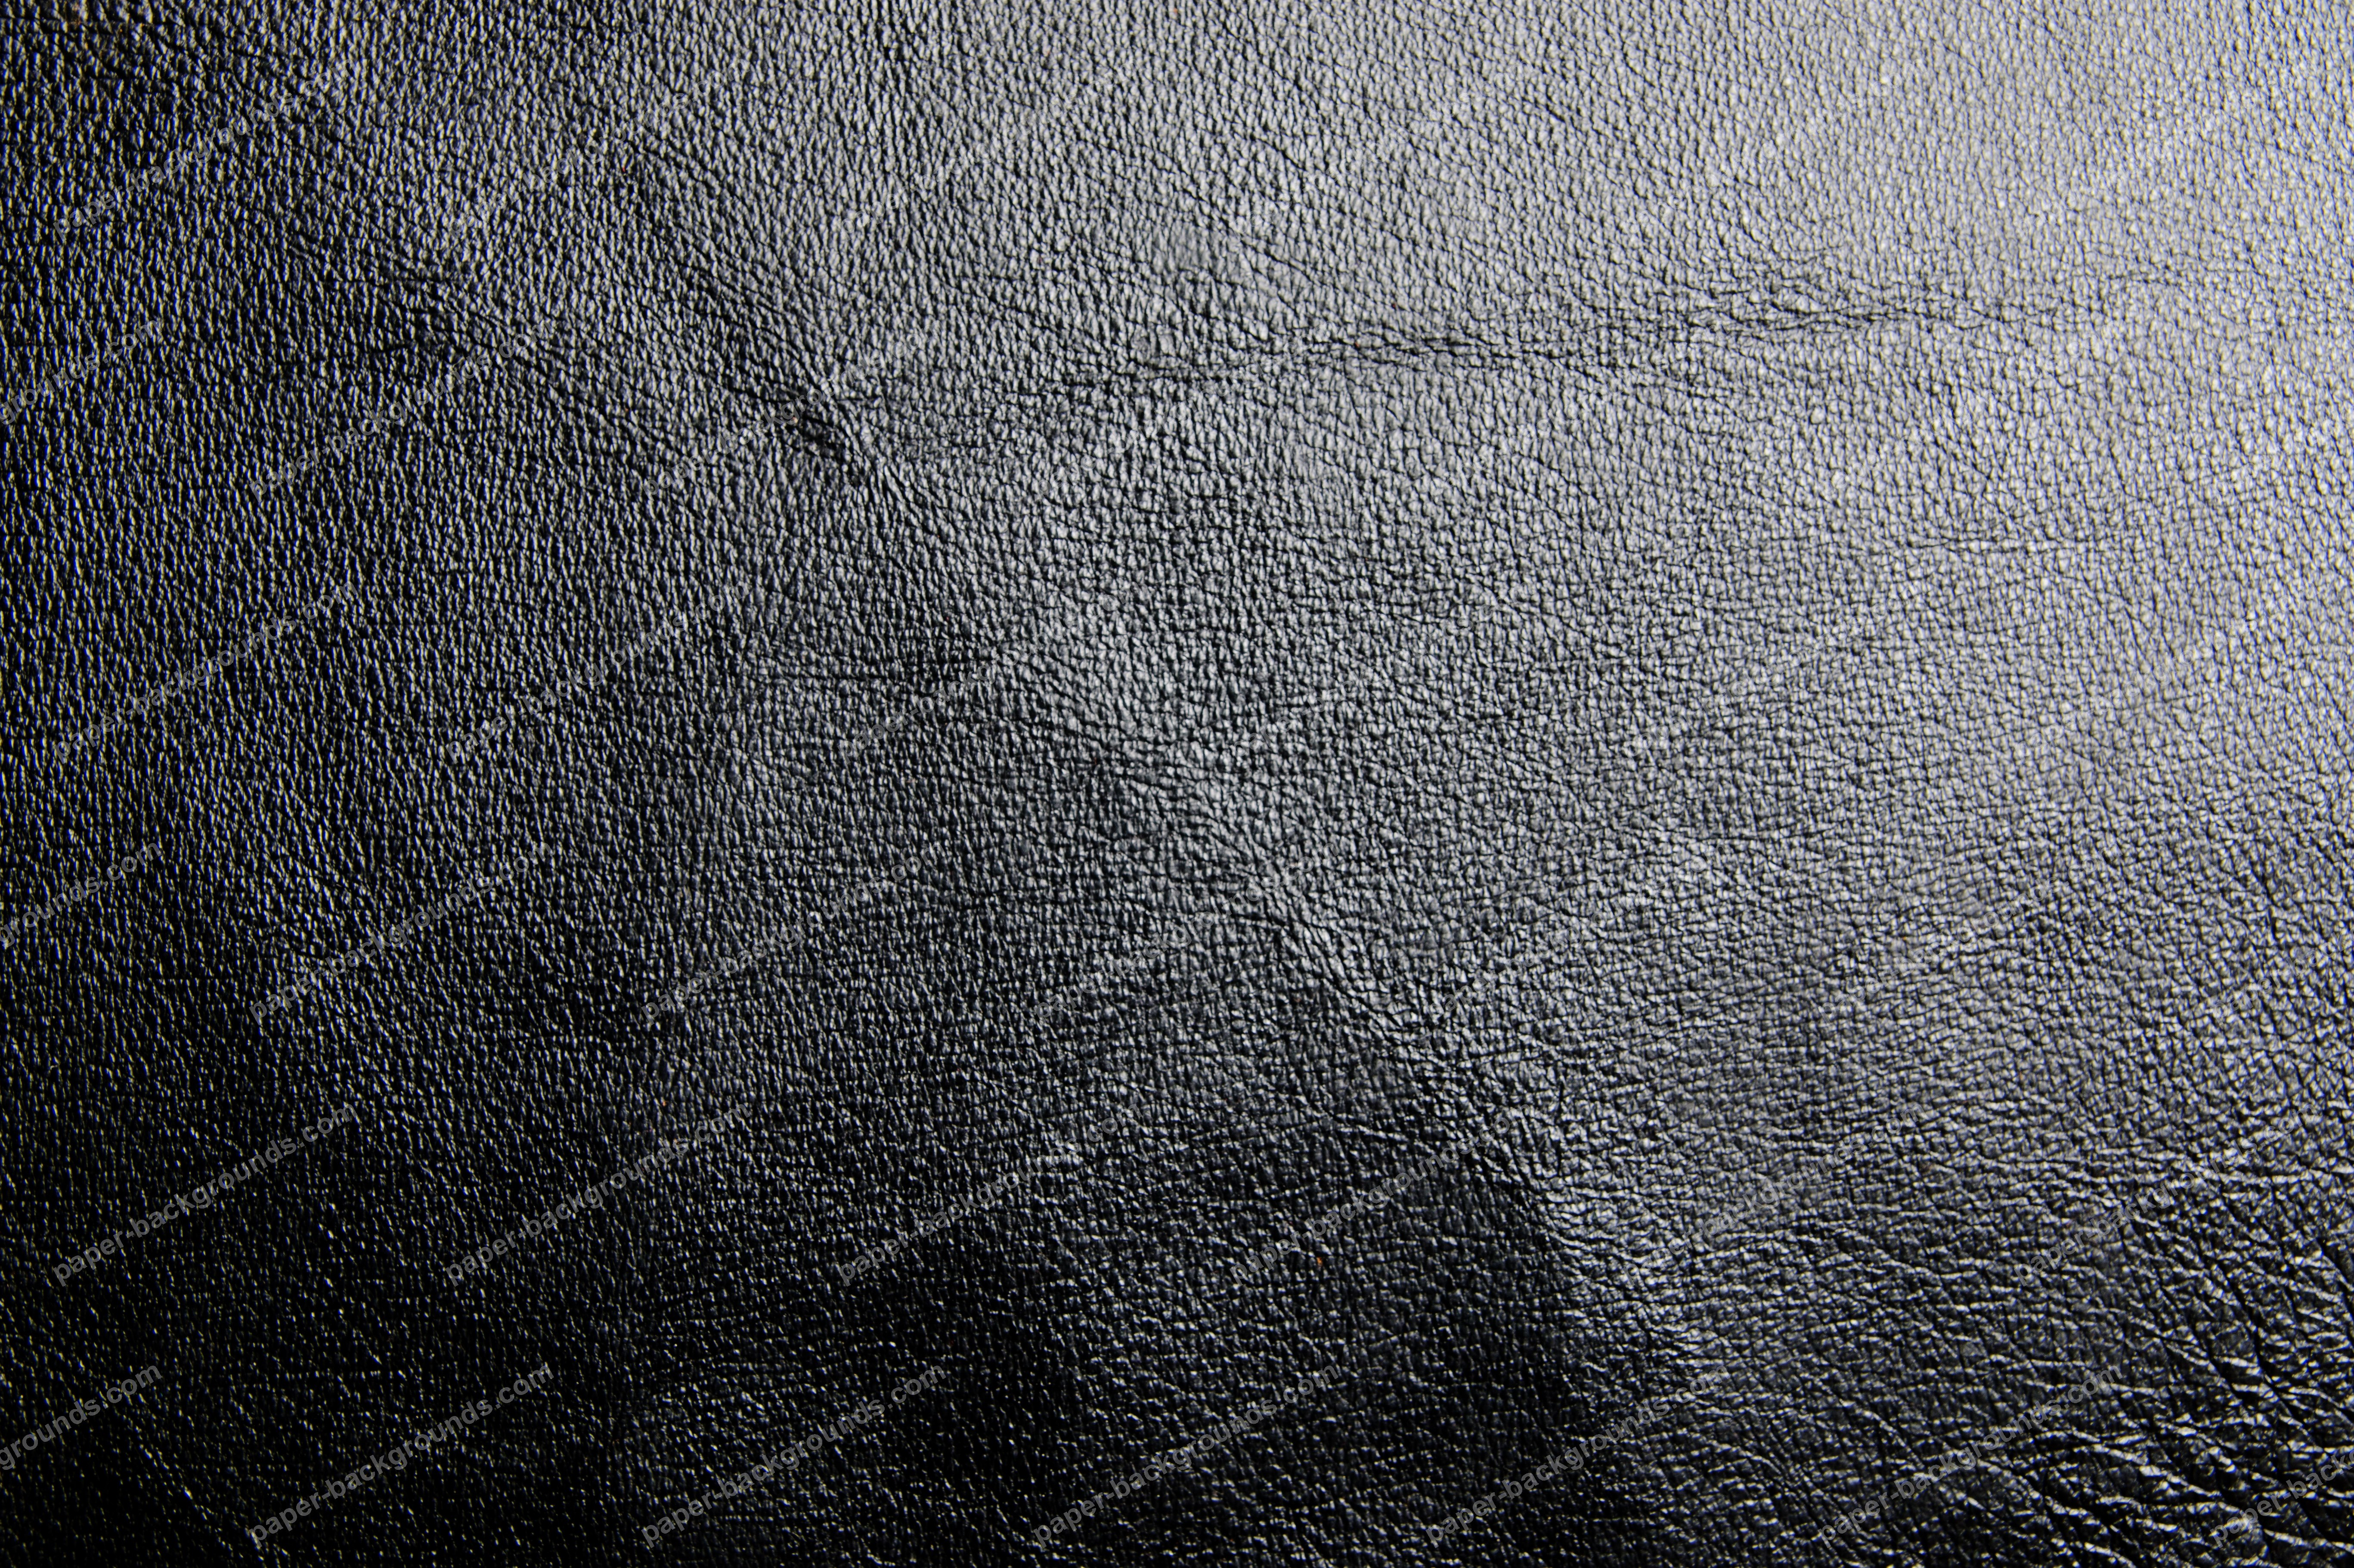 Black Shiny Leather Background Paper Backgrounds 5468x3642